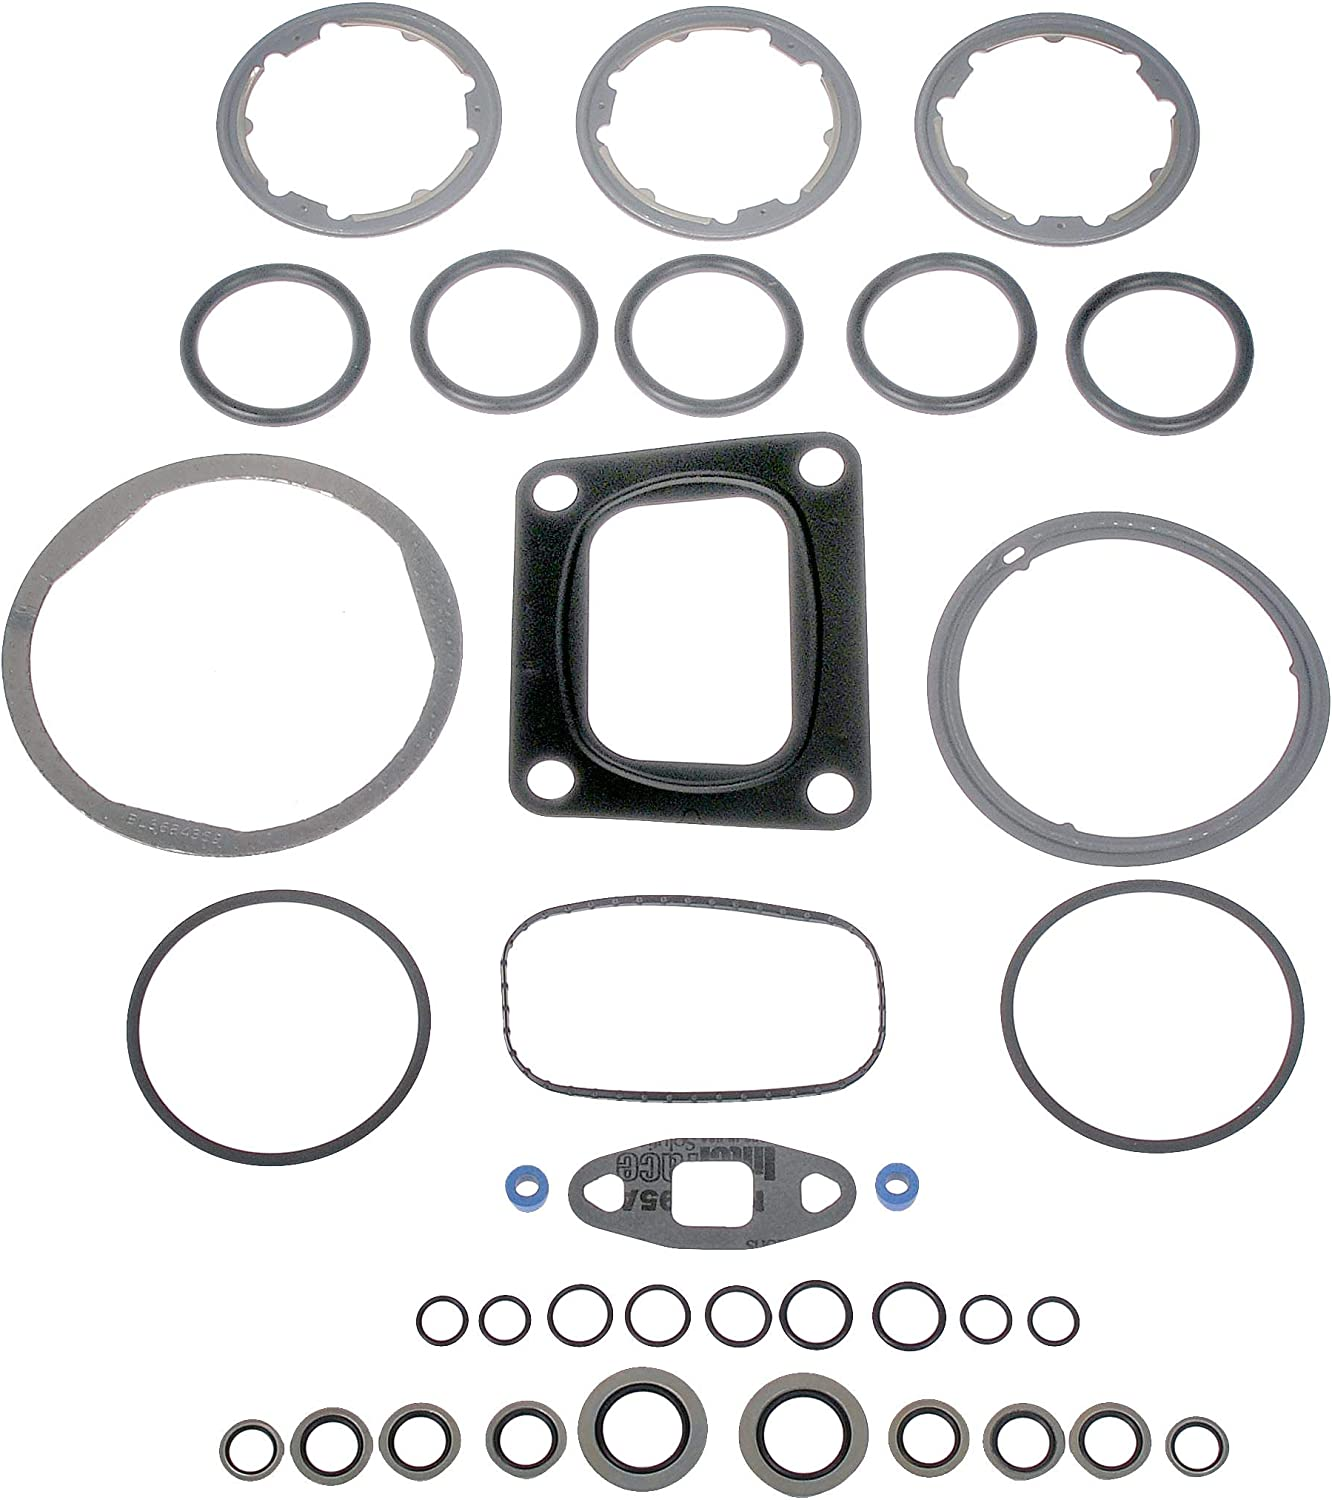 For Kenworth Peterbilt Exhaust Gas Recirculation Cooler Gasket Kit Dorman